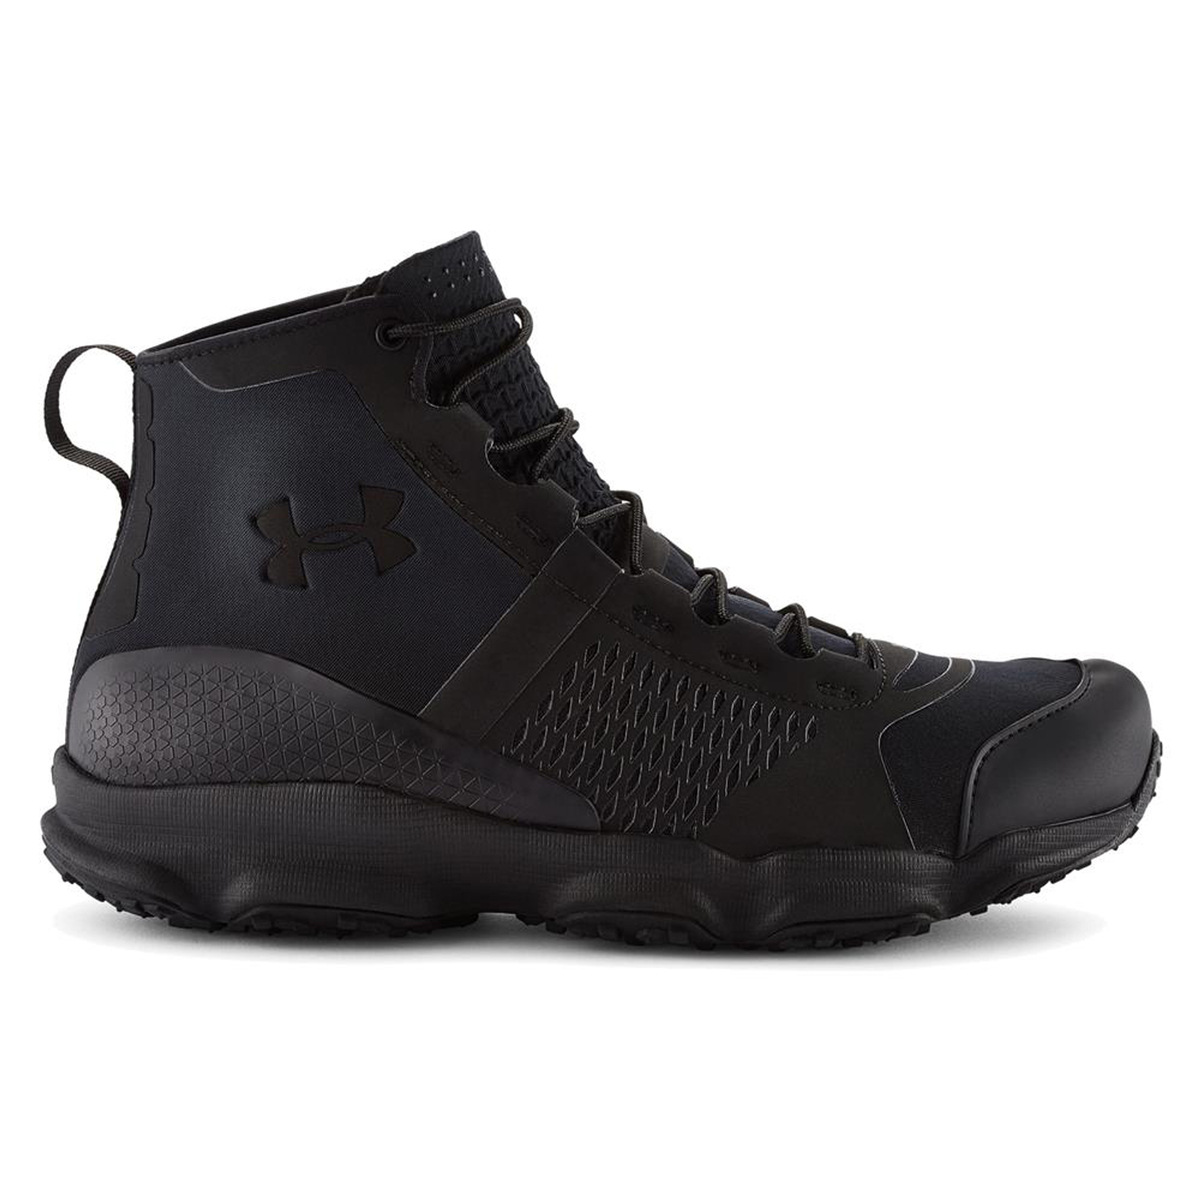 08339be2ddb3 Outdoor Tactical